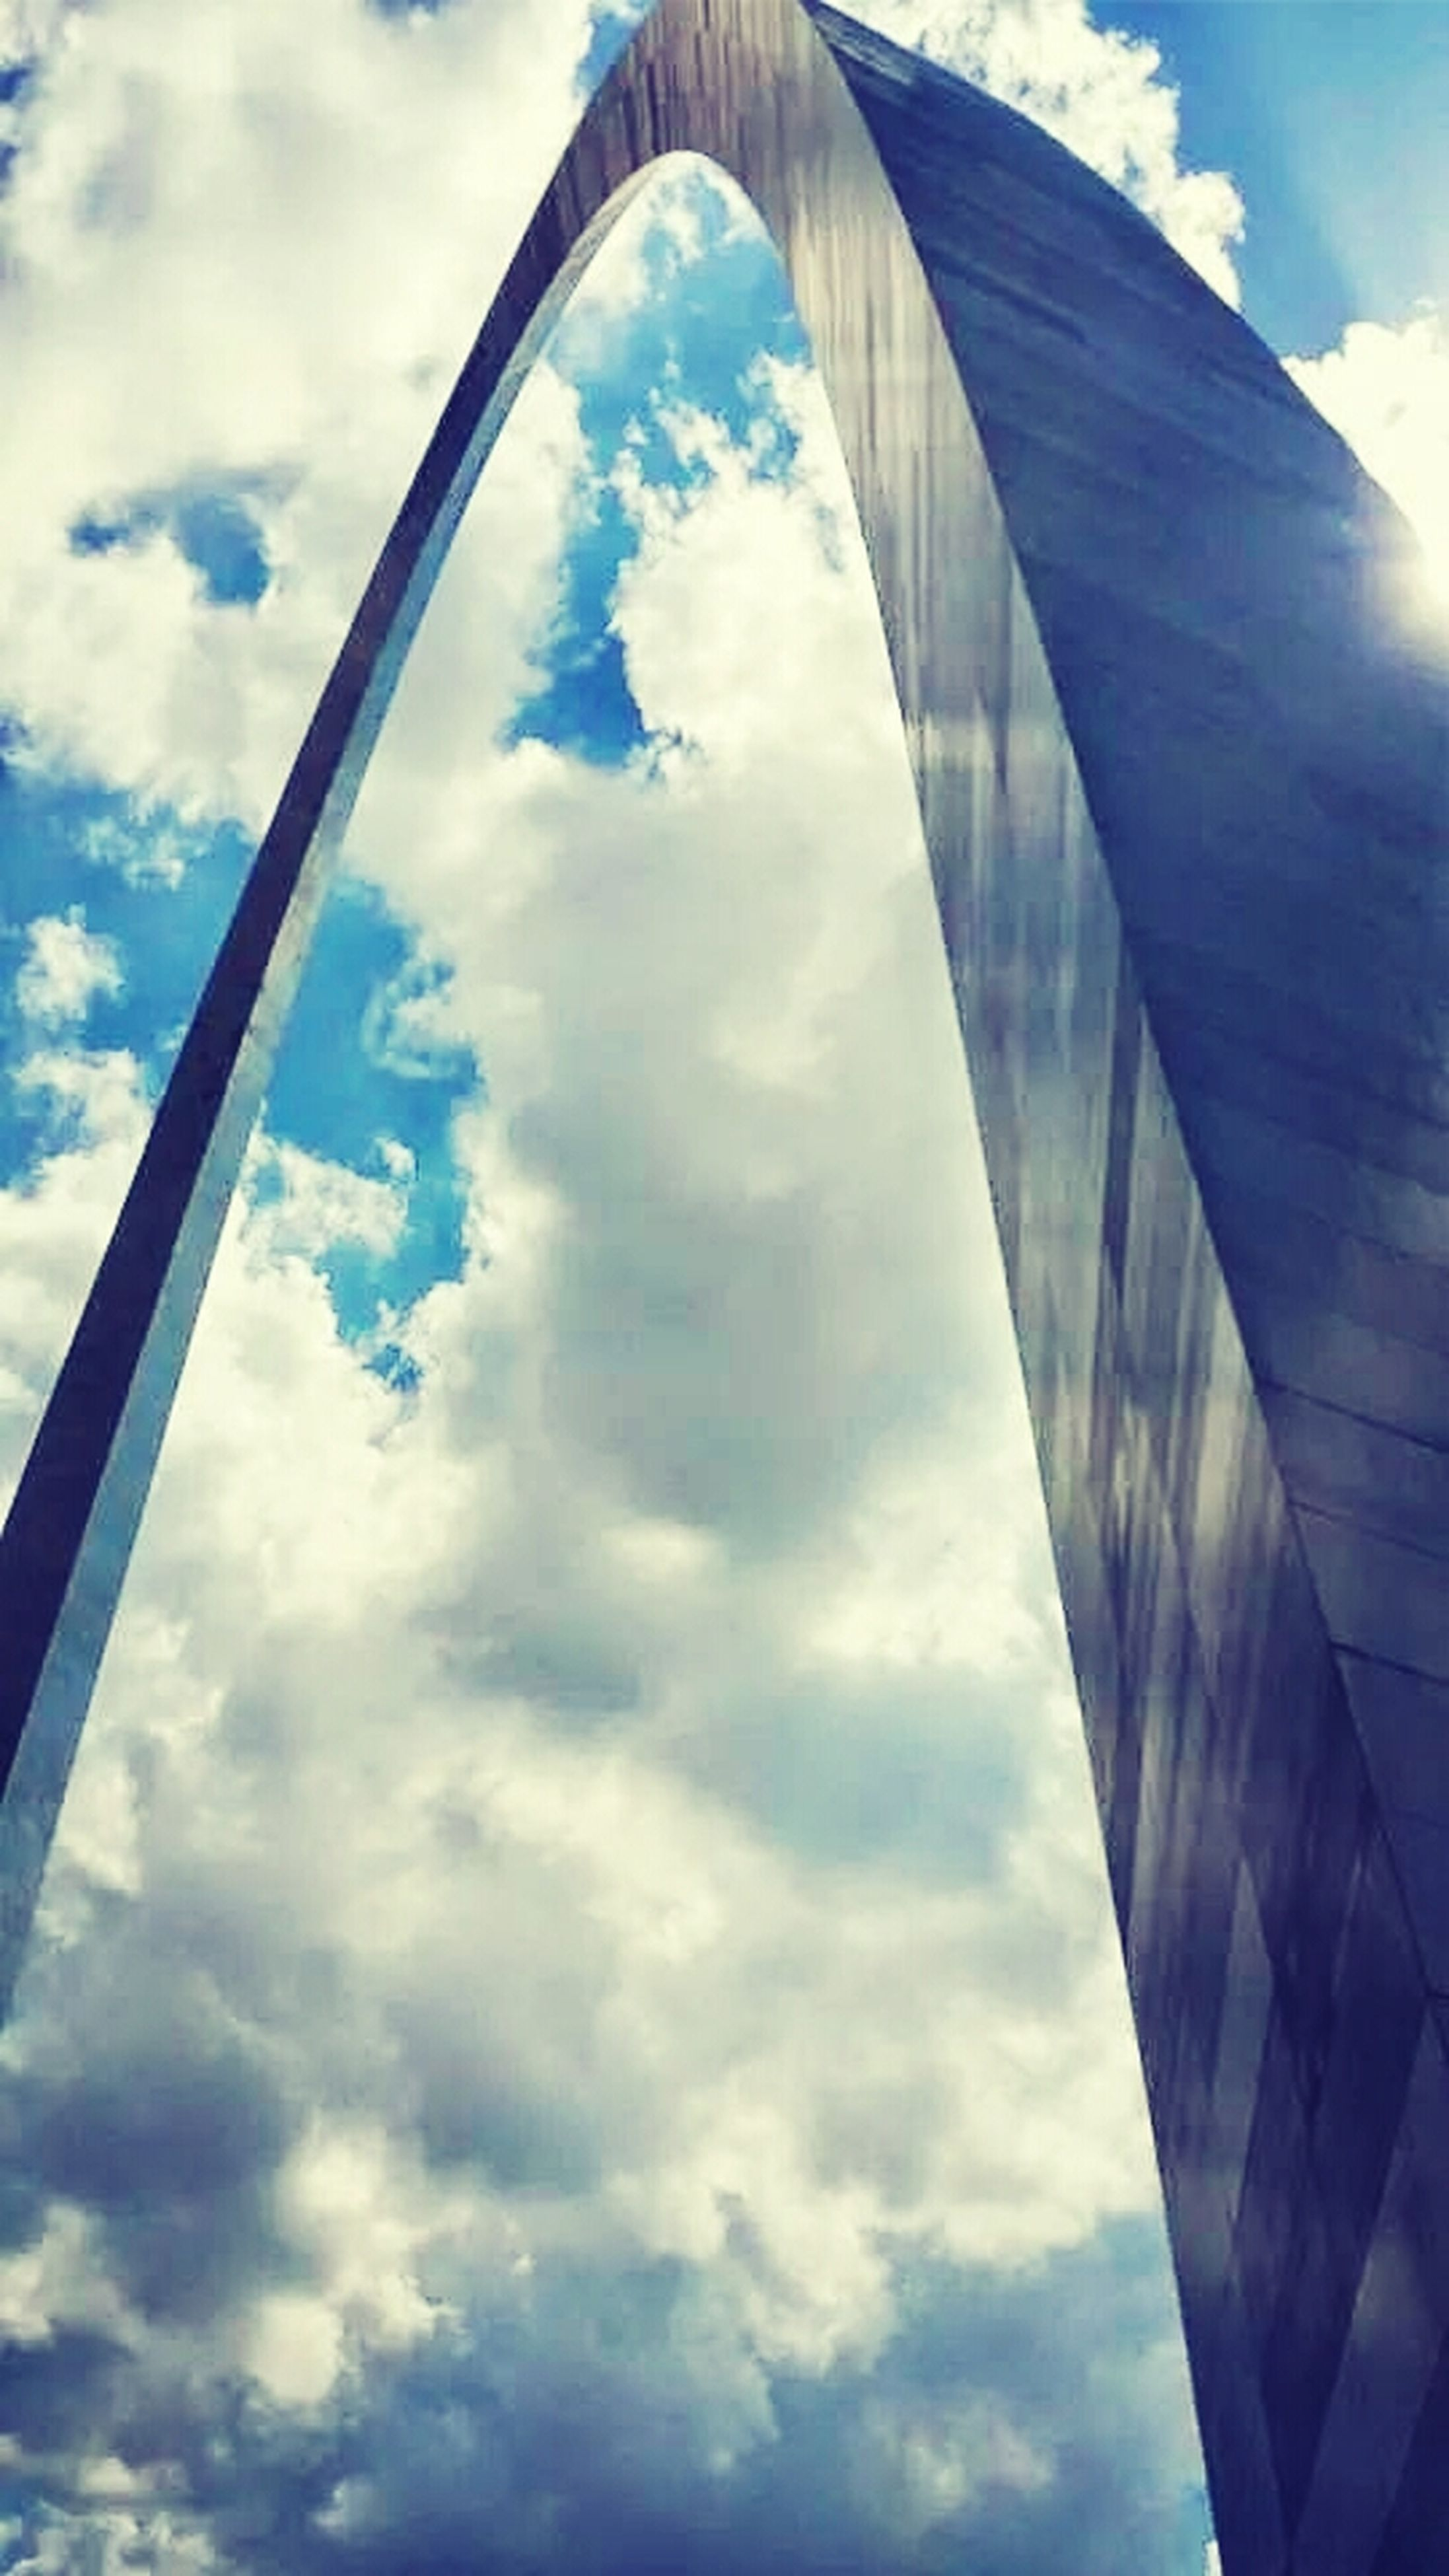 sky, cloud - sky, low angle view, architecture, built structure, cloud, cloudy, reflection, modern, day, glass - material, blue, building exterior, city, outdoors, no people, directly below, sunlight, arch, part of